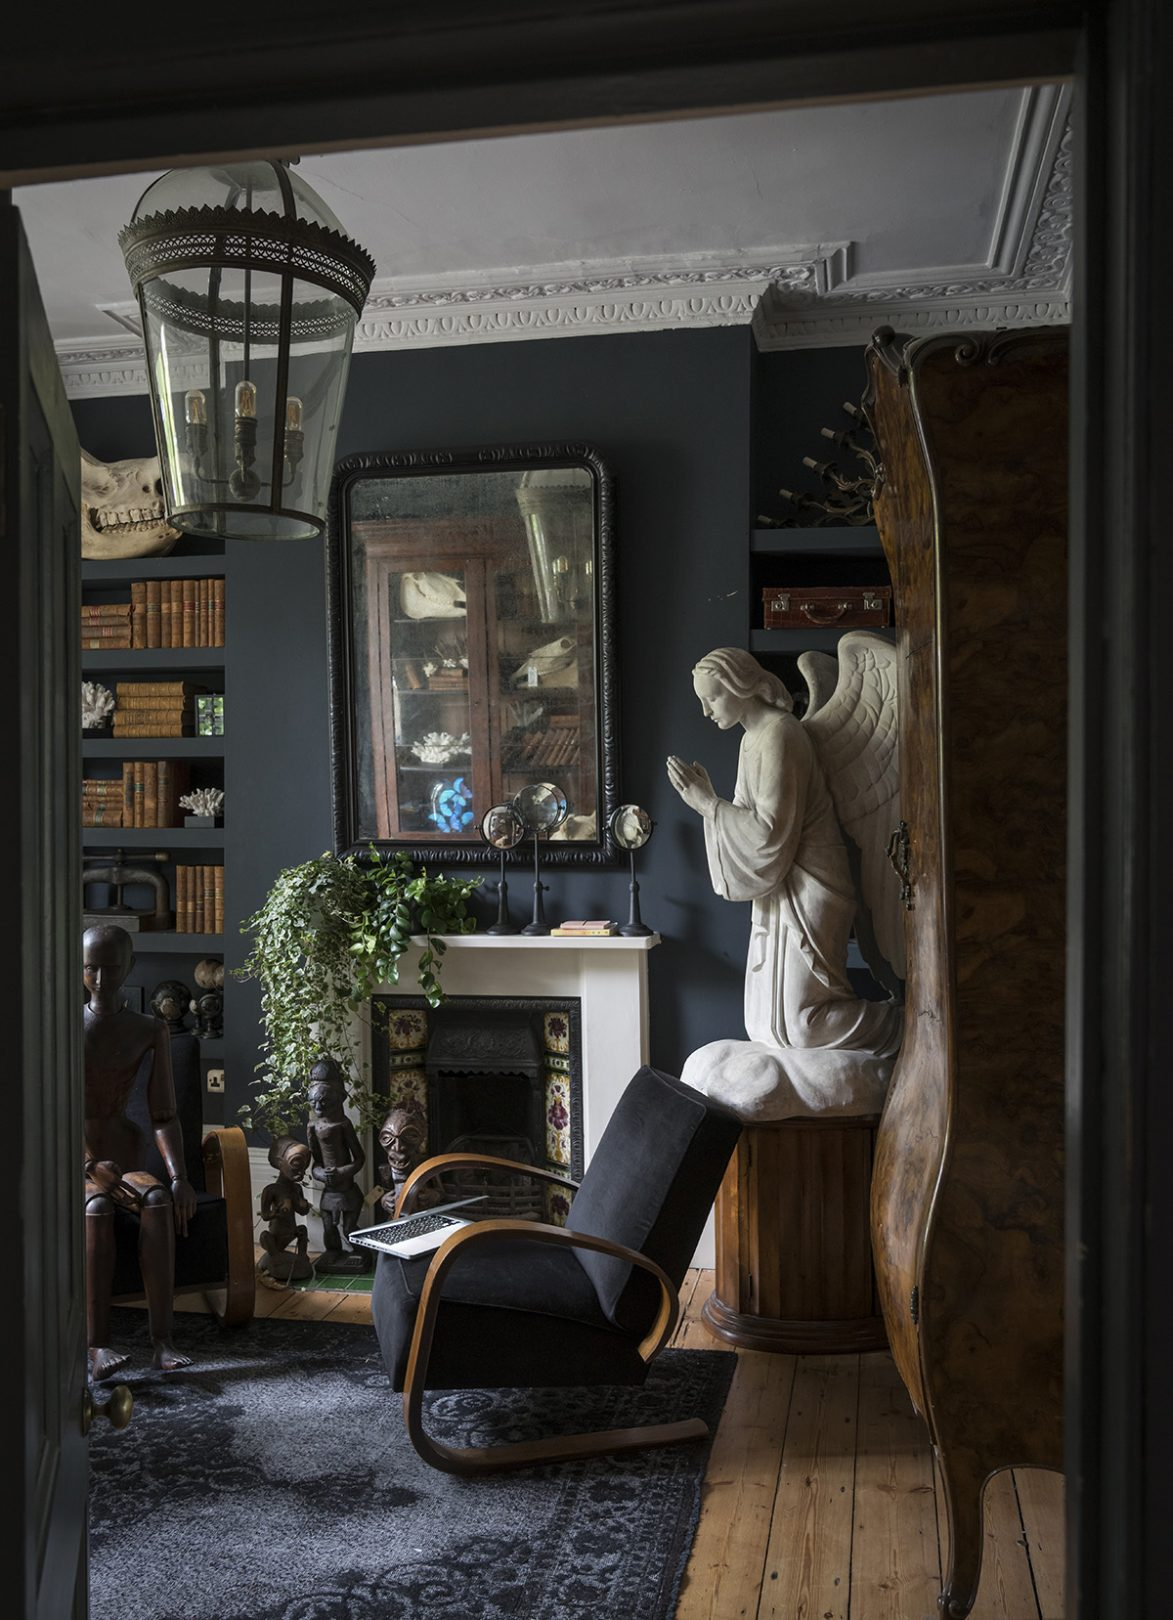 Living Room with Noteworthy Statues